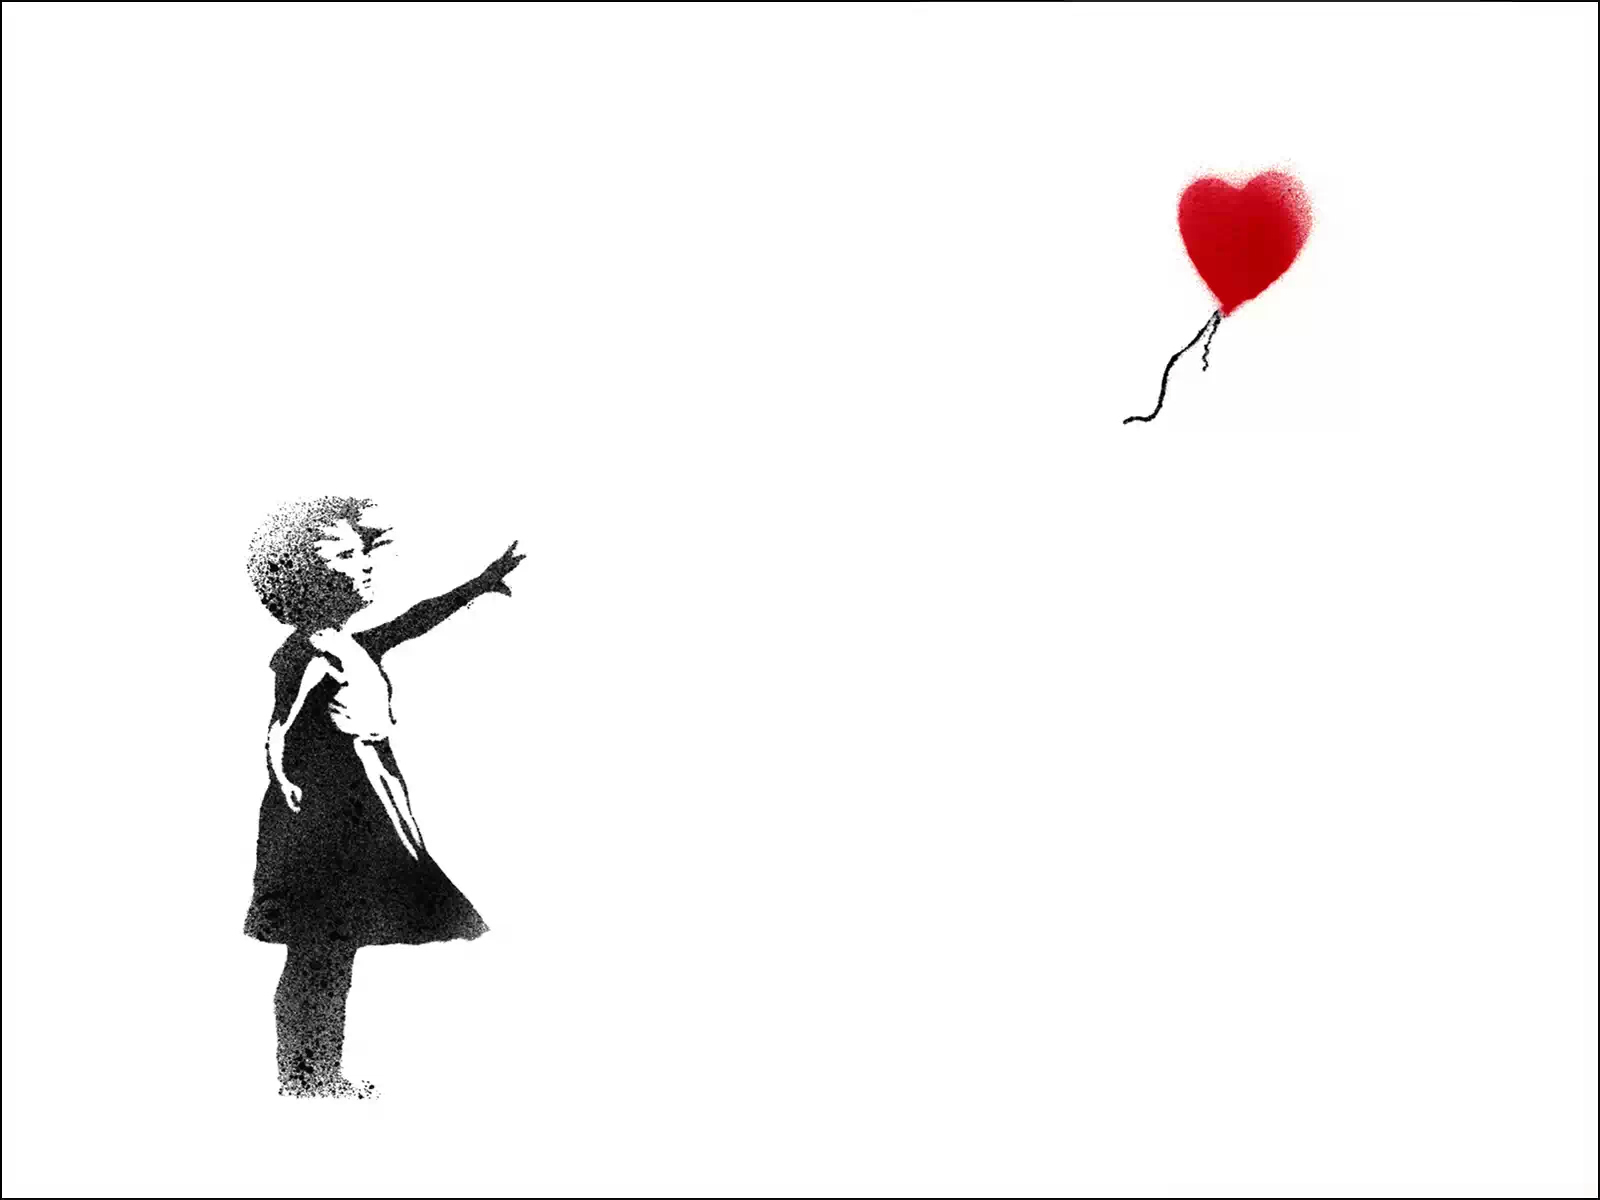 for so long you have been following someone elses heart